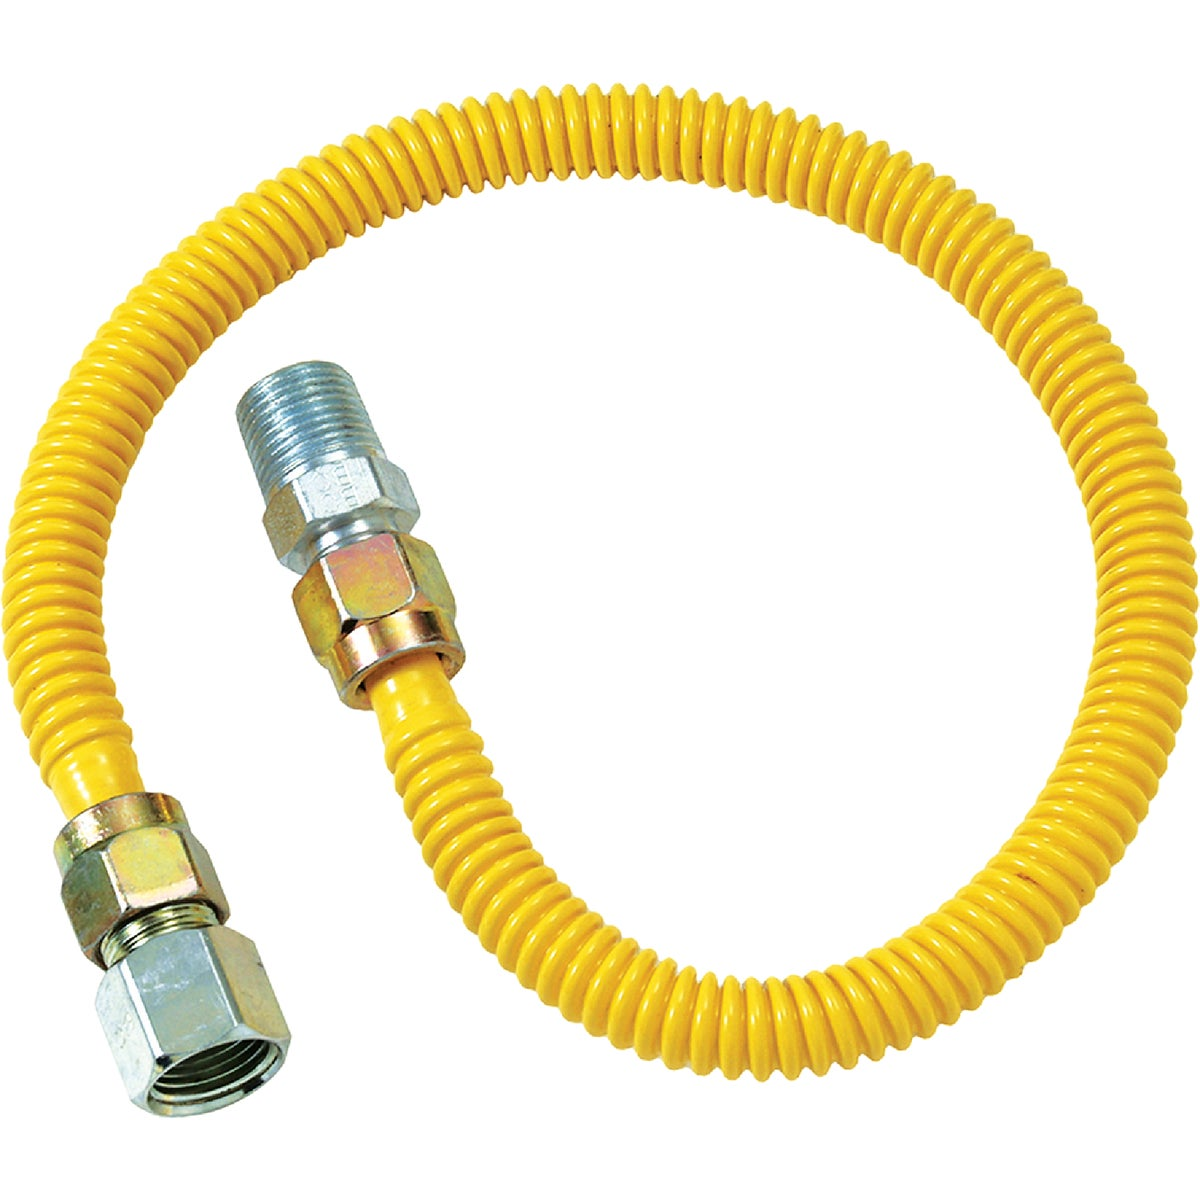 1/2X18 GAS CONNECTOR - CSSD54-18P by Brass Craft